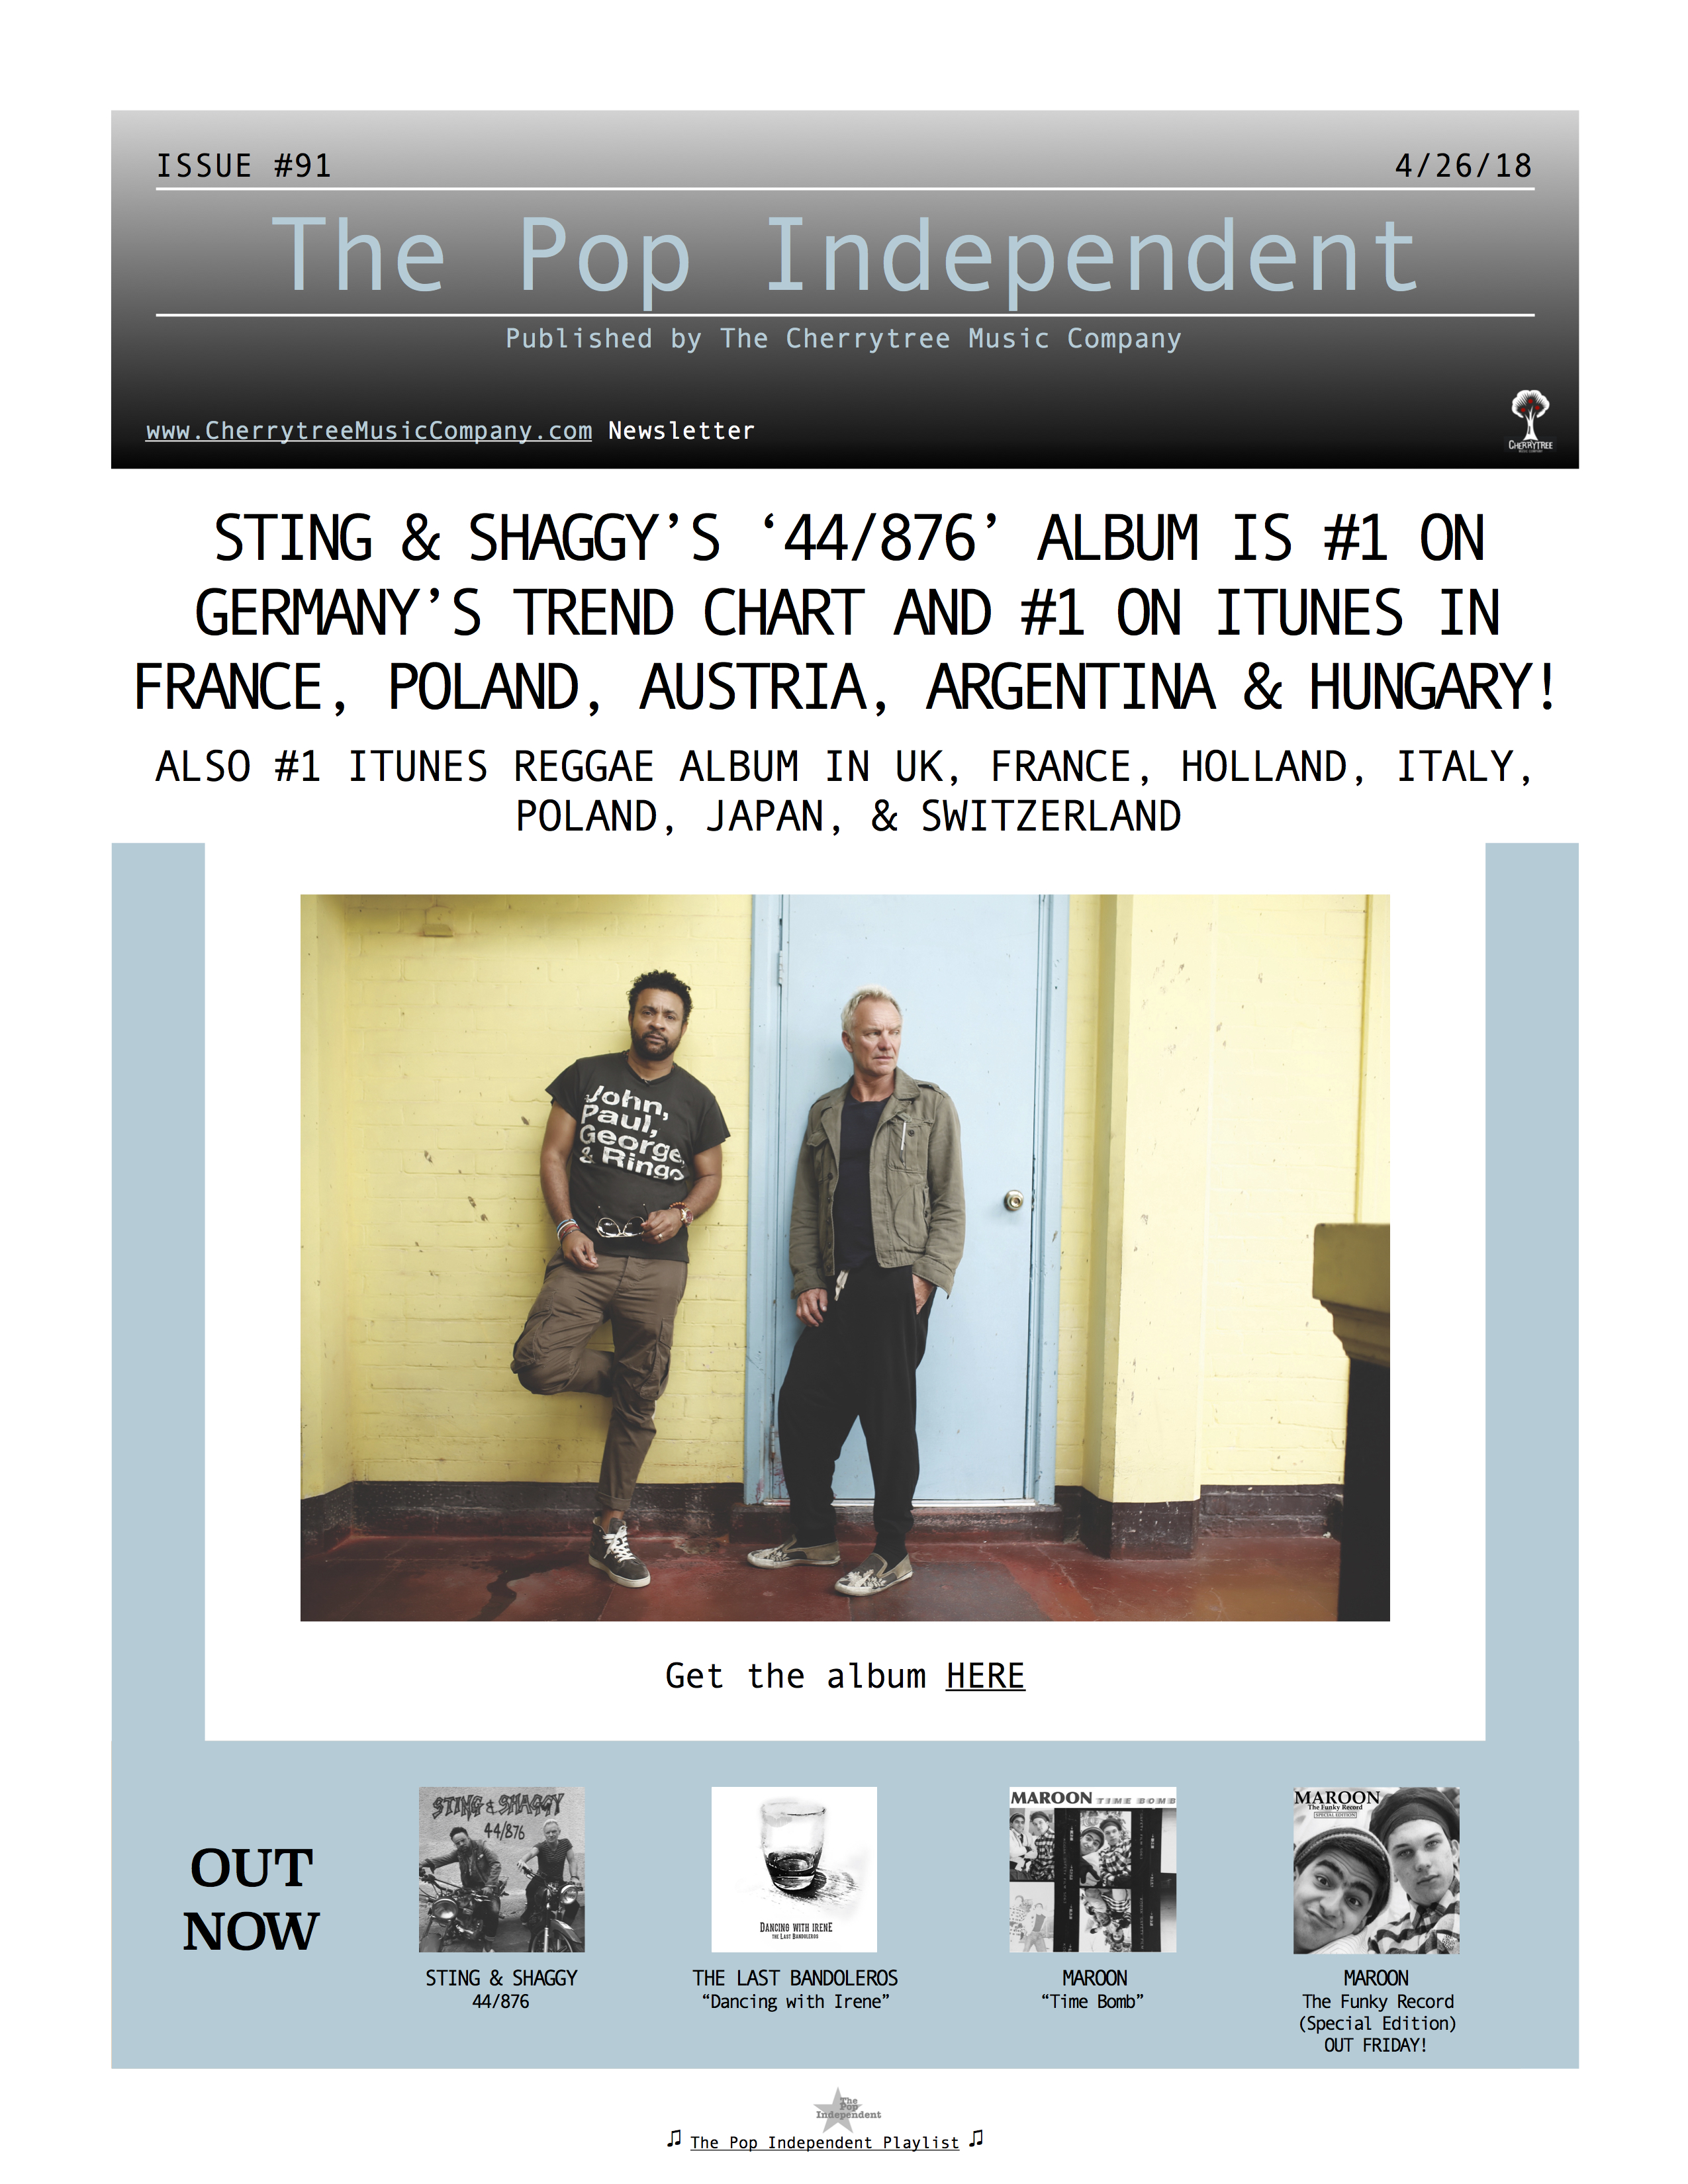 The Pop Independent, issue 91